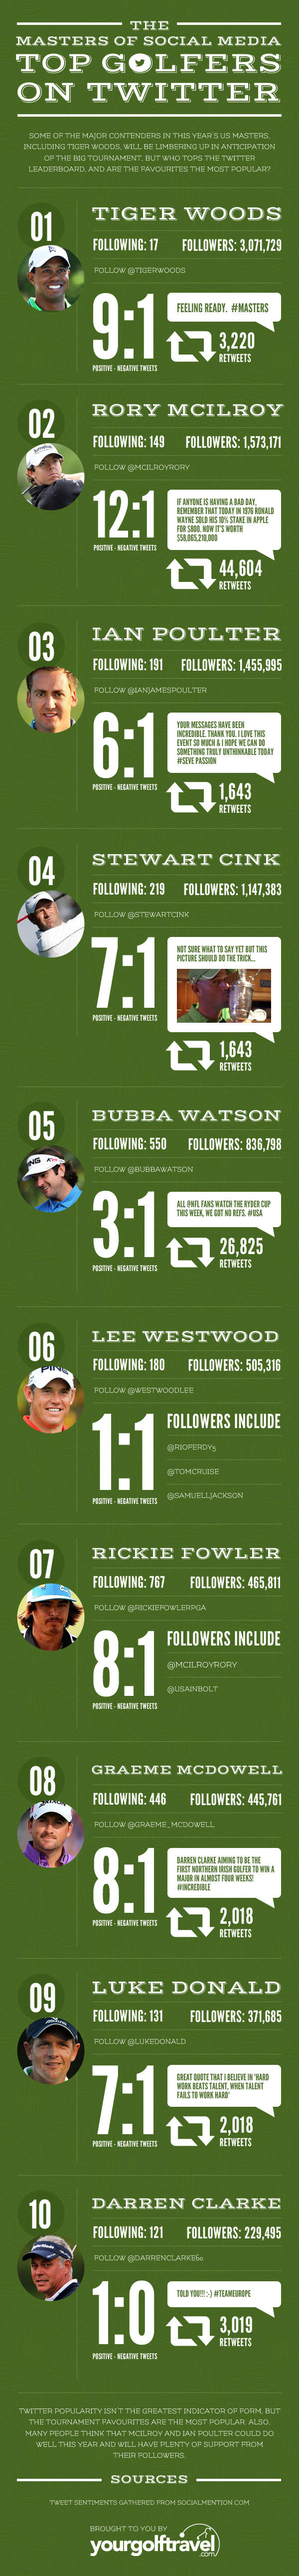 The Social Side of Golf Infographic